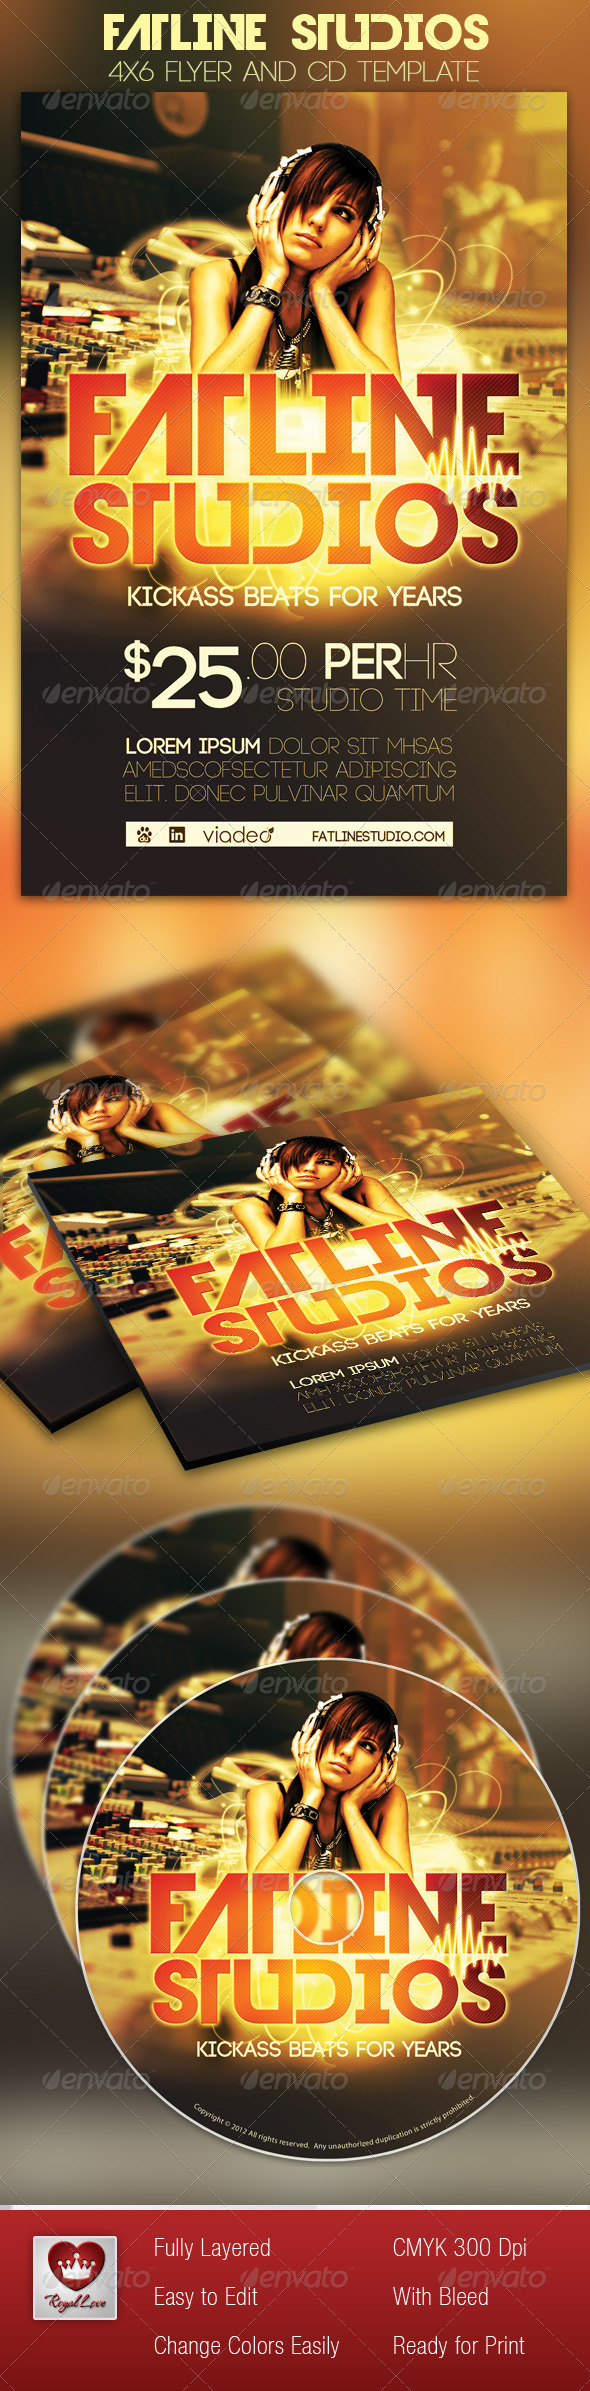 GraphicRiver Fatline Studios Flyer and CD Template 2905406